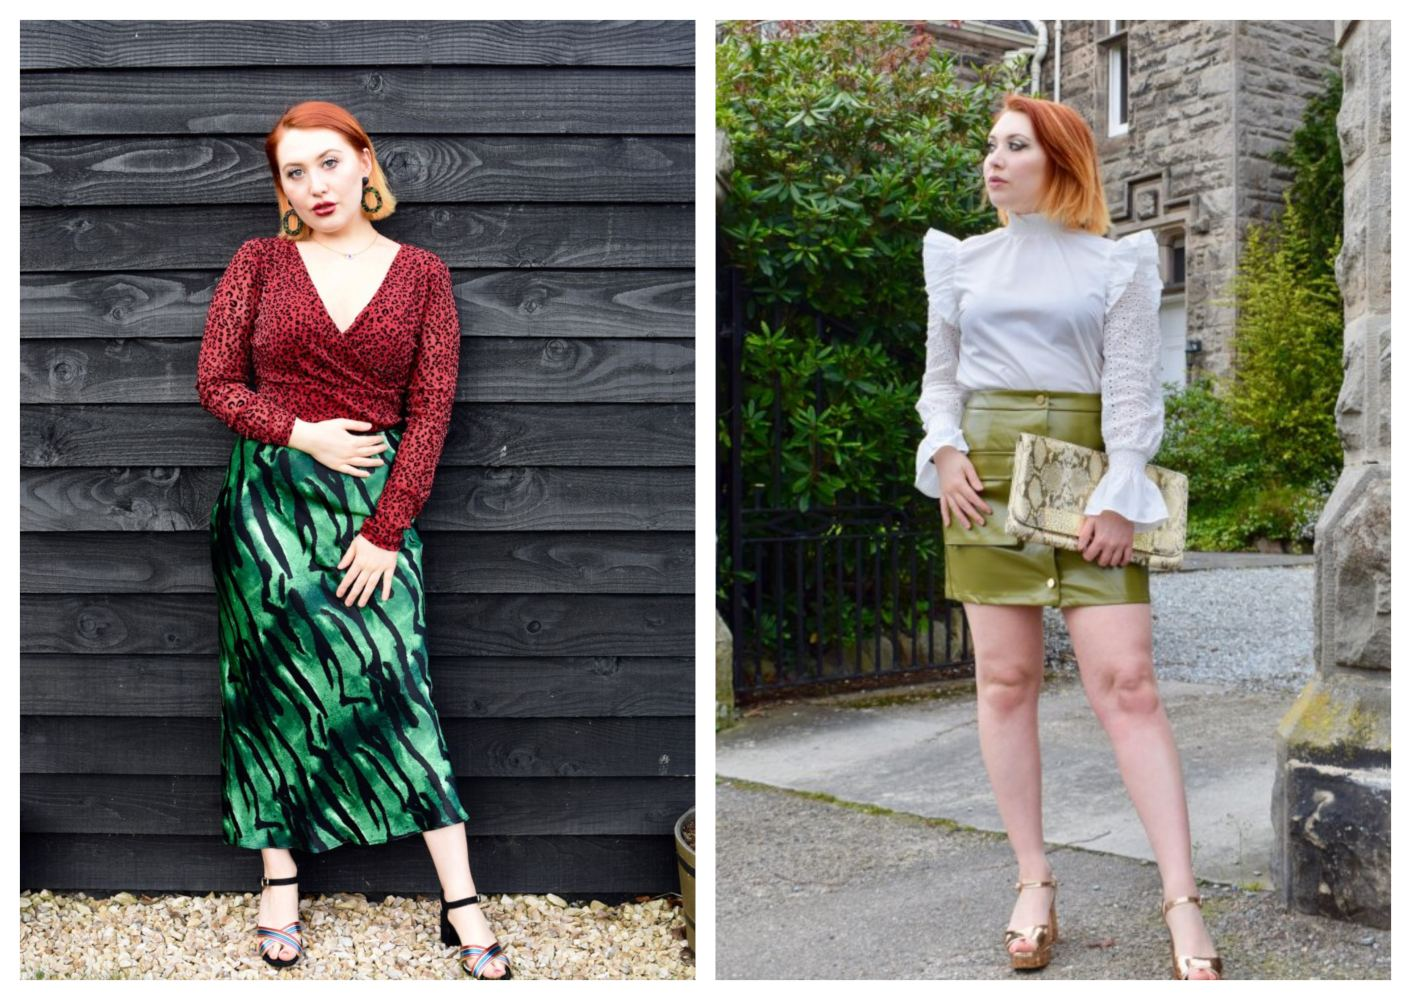 Midi vs. mini: finding the skirt style that suits you for spring